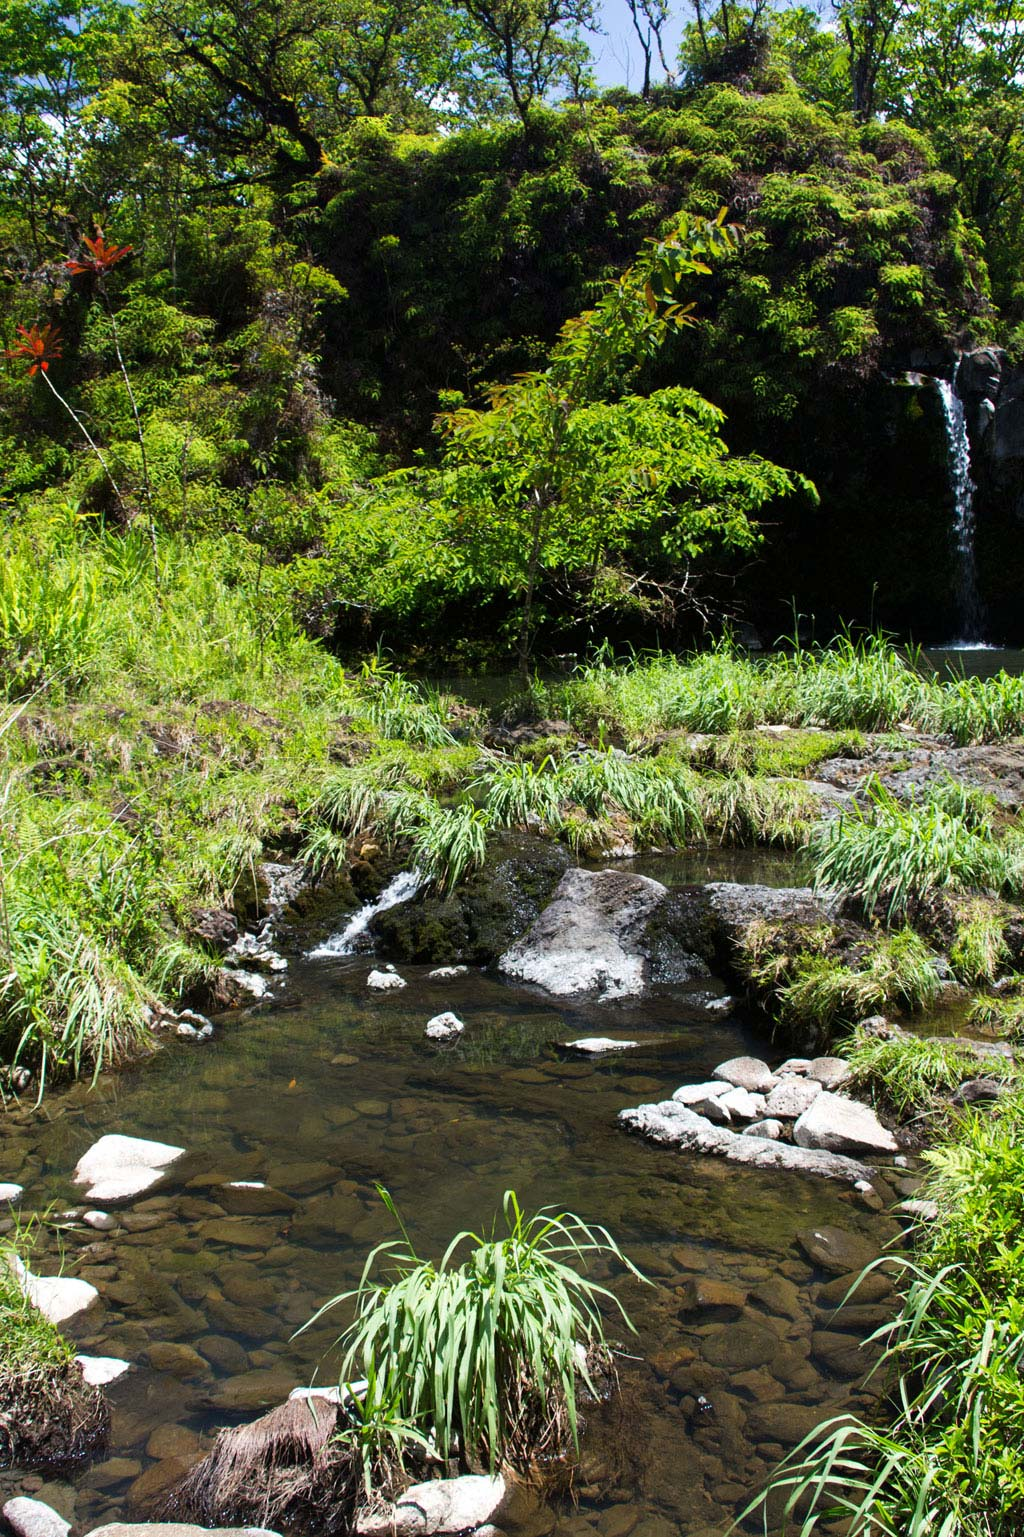 Maui Hawaii – Puaa Kaa Fall Wasserfall an der Road to Hana | SOMEWHERE ELSE